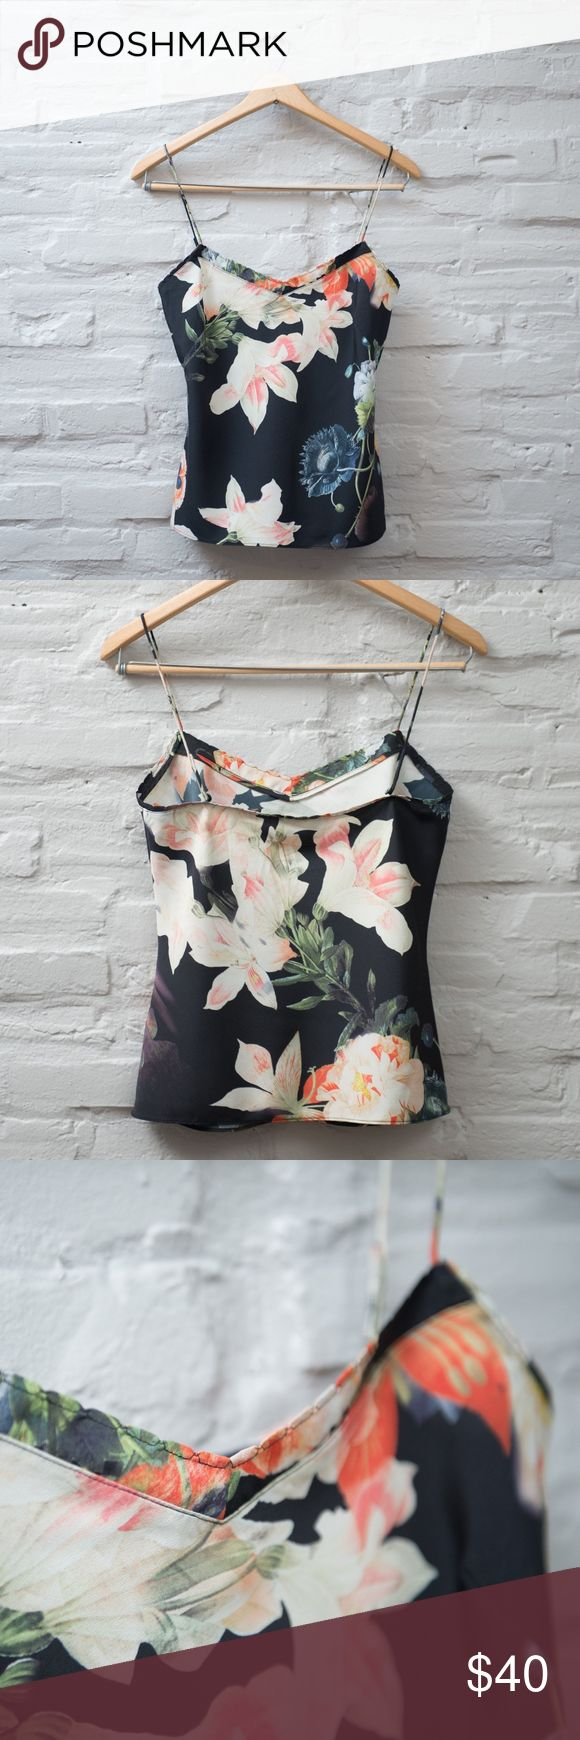 Ted Baker Cynaria Cami Classic Ted Baker cami in black with a floral print. Sustainably minded with a makeup of 56% polyester and 44% recycled polyester. Scalloped neckline. Size small but definitely made for a petite woman. My dress form is a size 2-4 and it did not fit over the bust. Ted Baker London Tops Camisoles